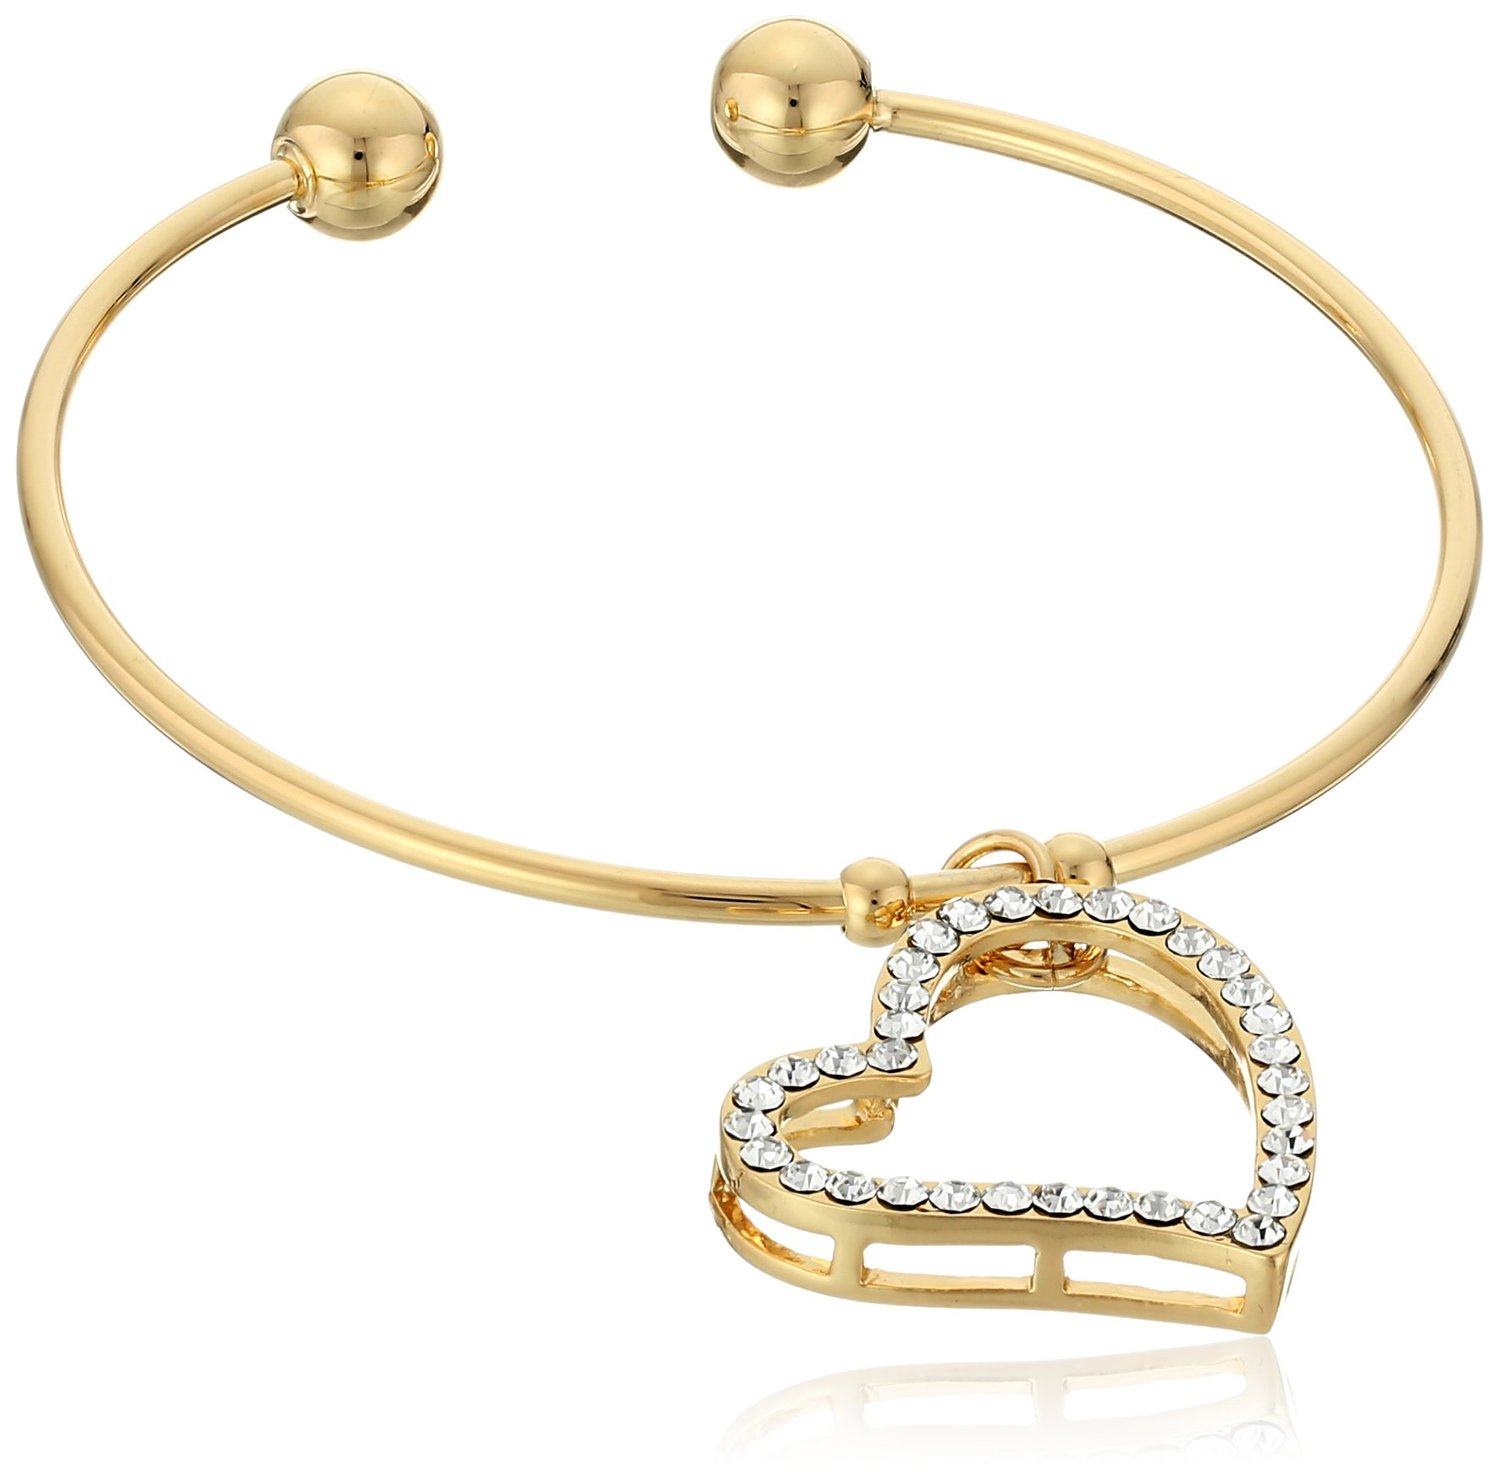 sphere with thin online milano maschio simple silver cuff in dot shop gold bangles open bead armband bracelet bangle gioielli minimalist